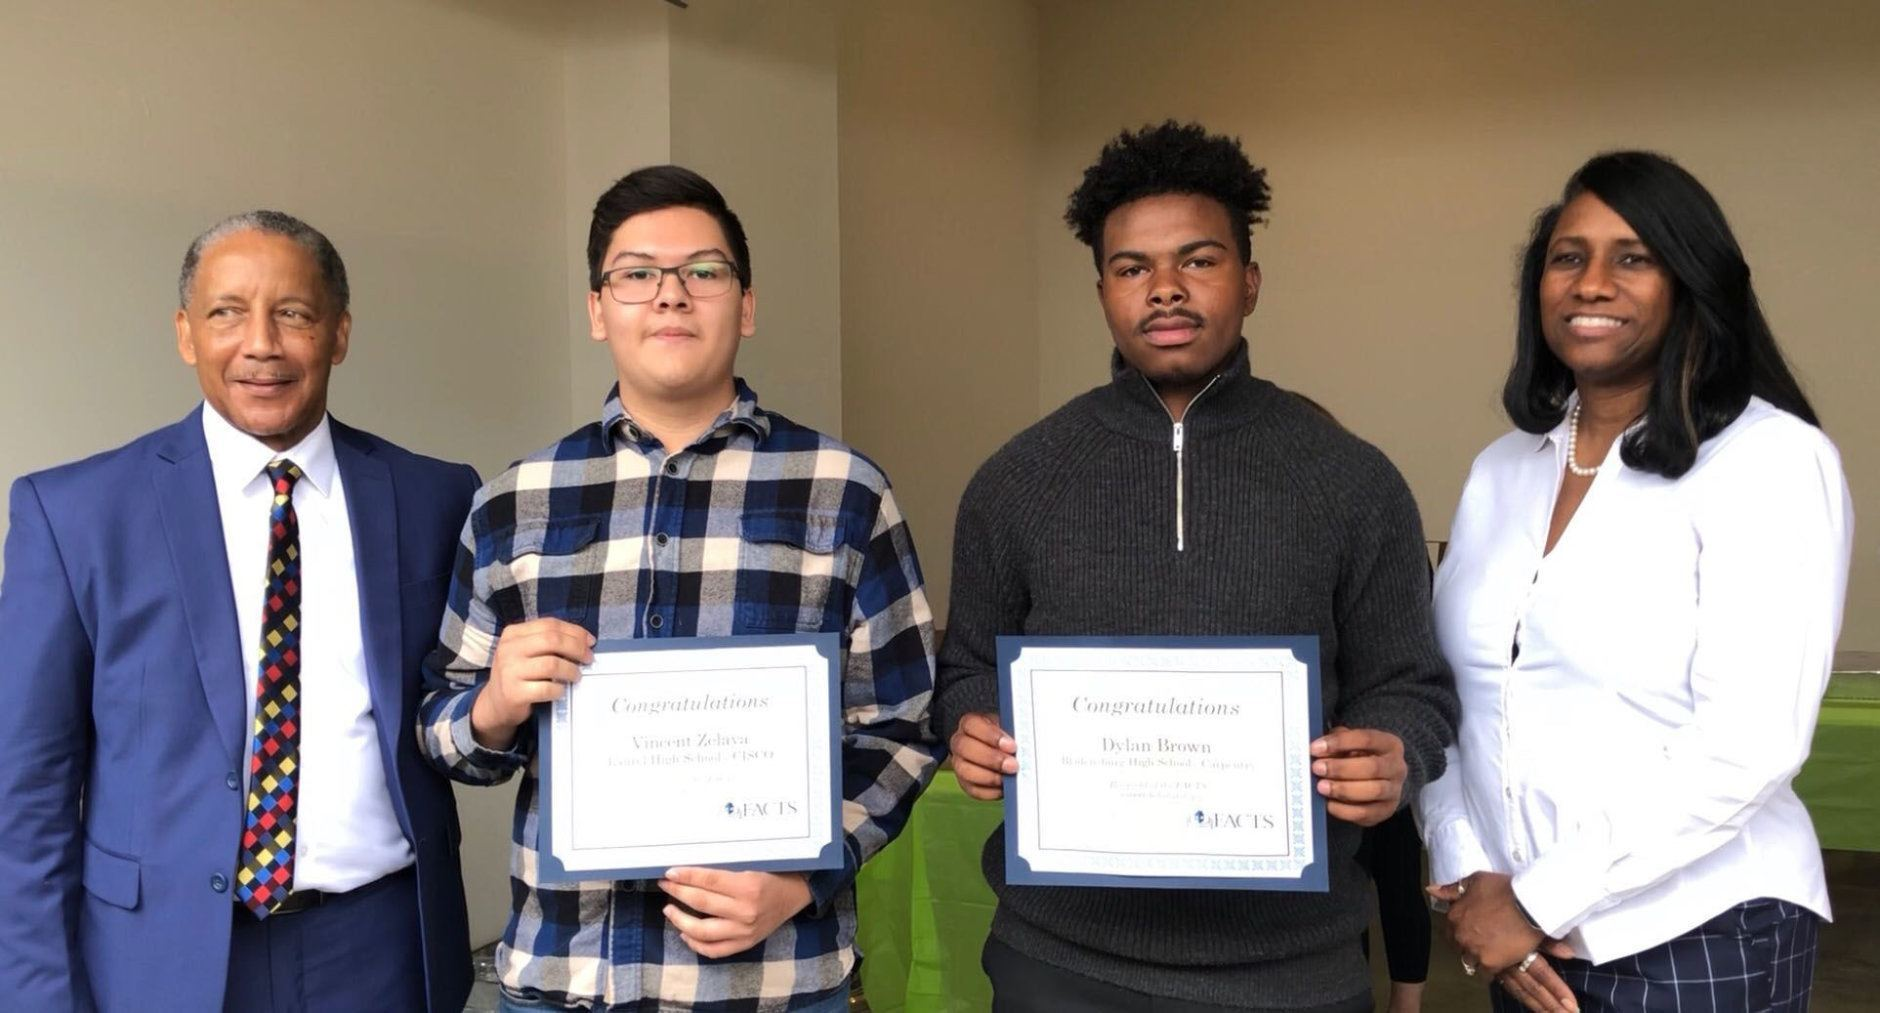 Vincent Zelaya and Dylan Brown, $1,000 Scholarship winners, are pictured with FACTS Chair Howard Burnett and Prince George's County School Board member Sonya Williams. (WTOP/Kristi King)